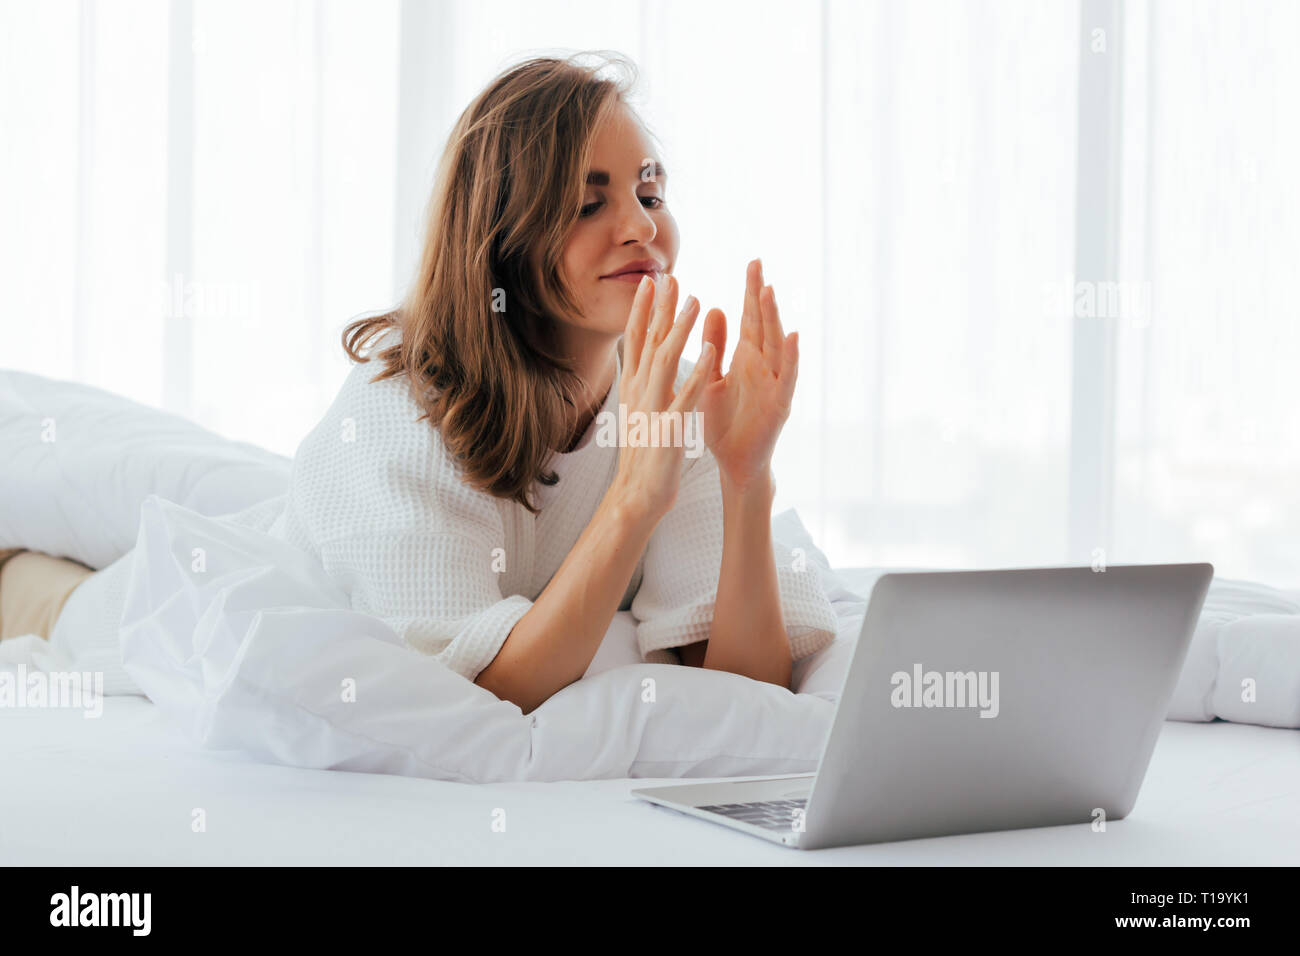 Young woman doing video call on laptop and speaking hand language on bed in light room - Stock Image